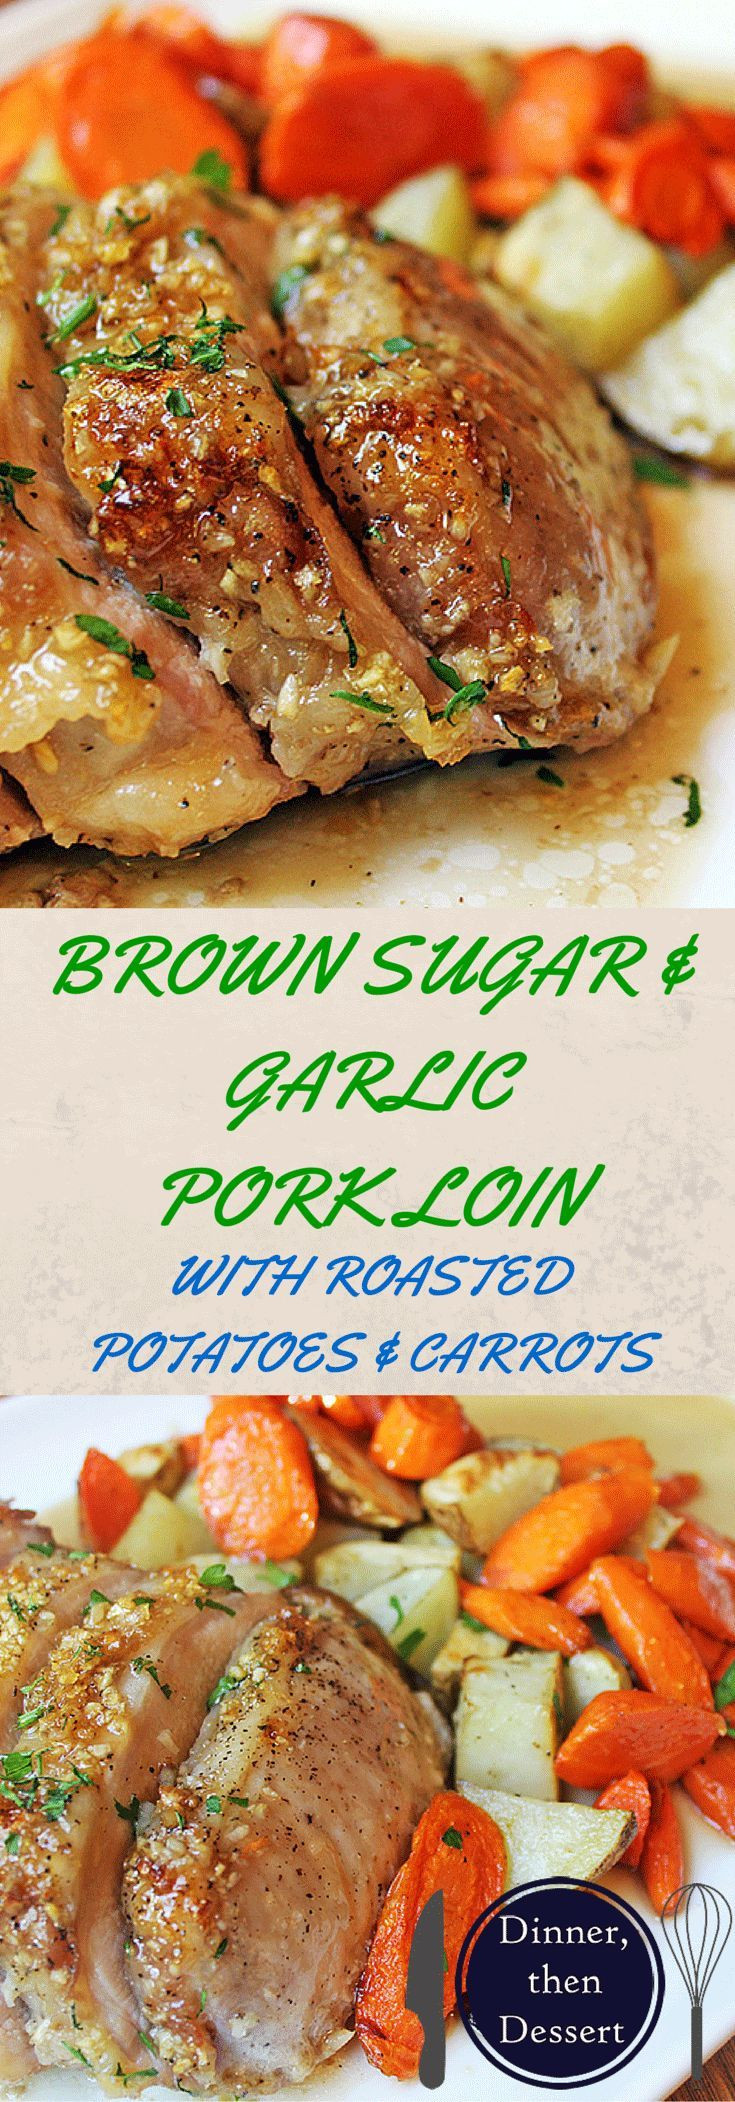 Pork Tenderloin Sides  Brown Sugar Garlic Pork with Carrots & Potatoes